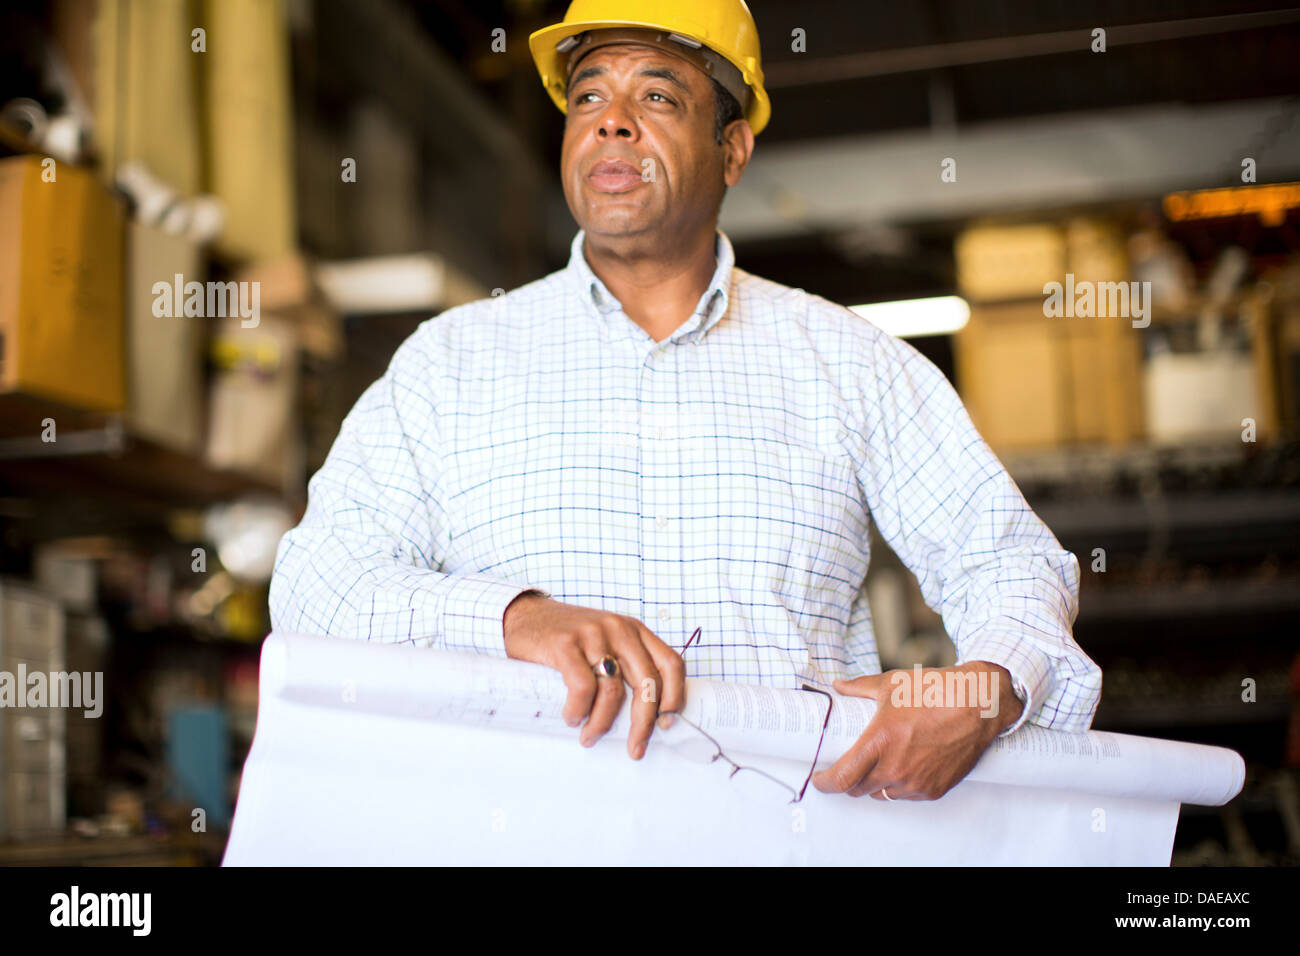 Man in warehouse rolling up blueprint - Stock Image